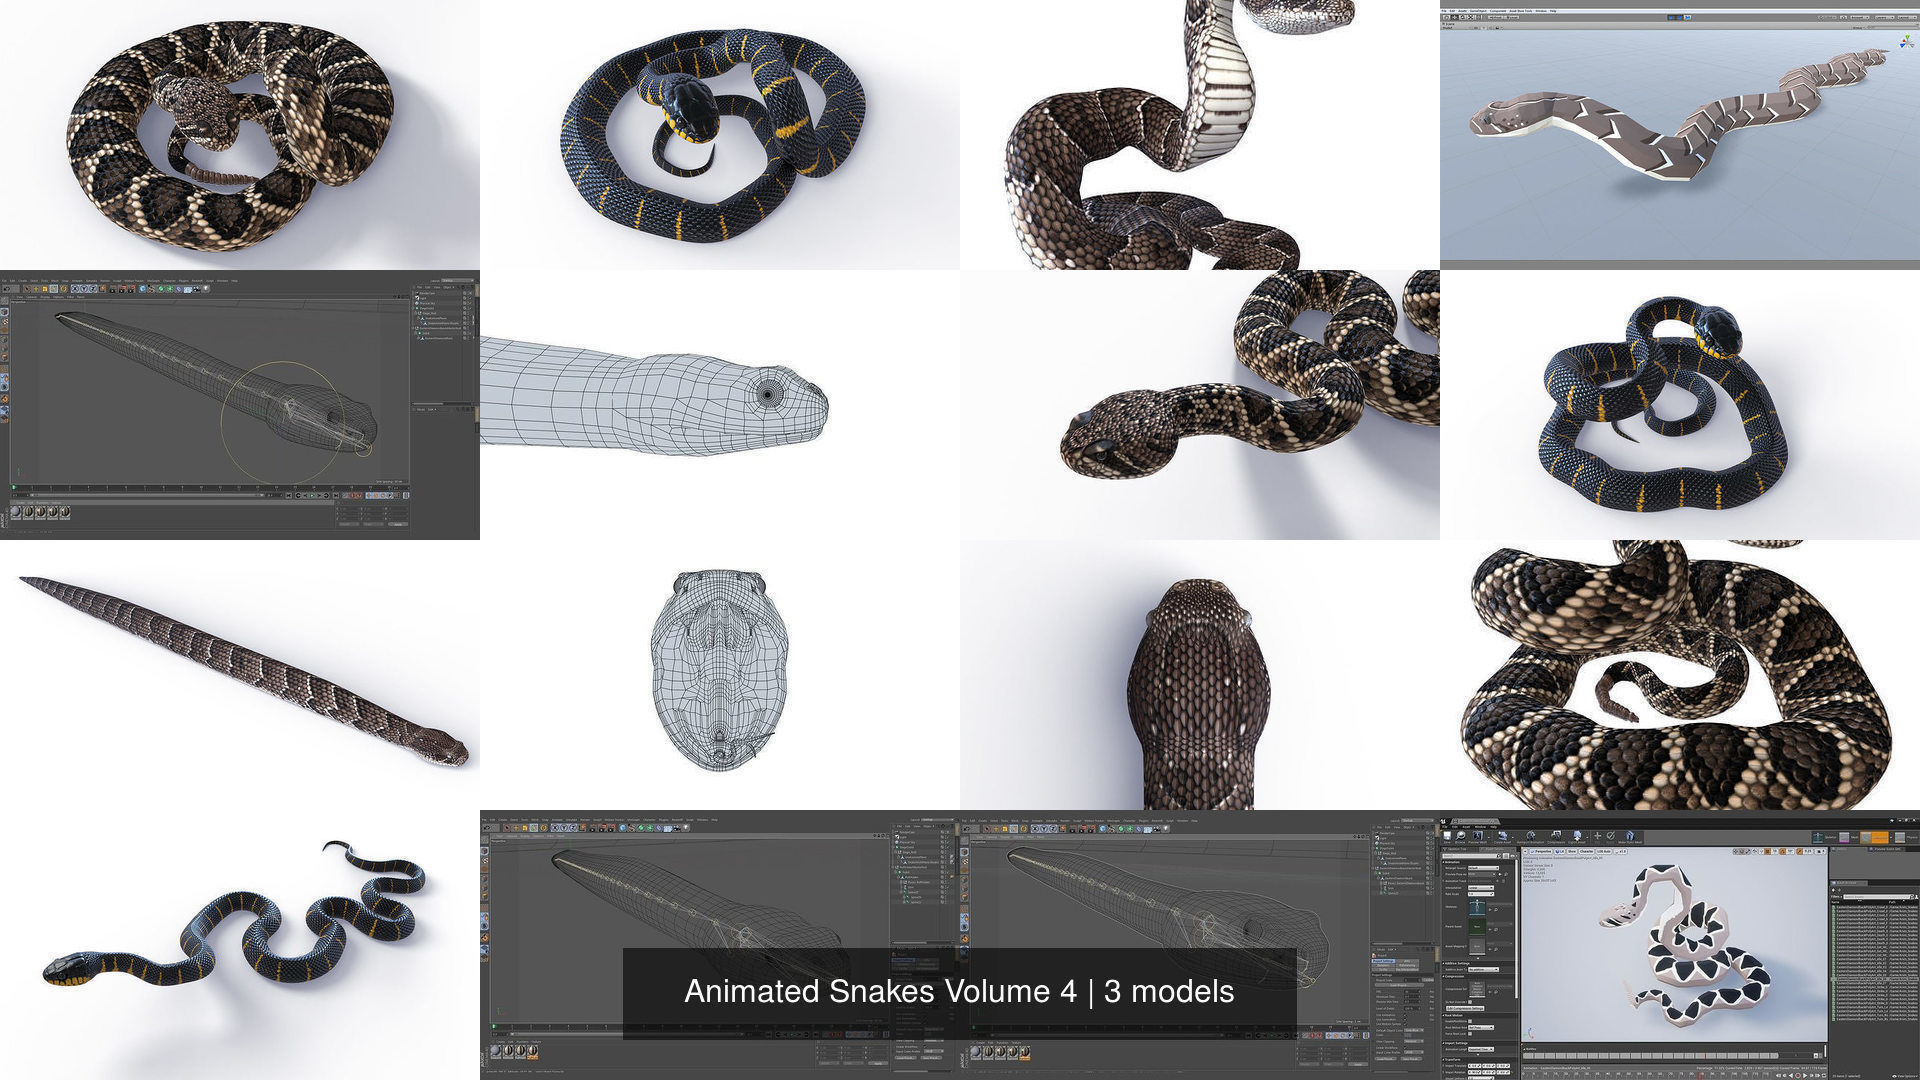 Animated Snakes Volume 4